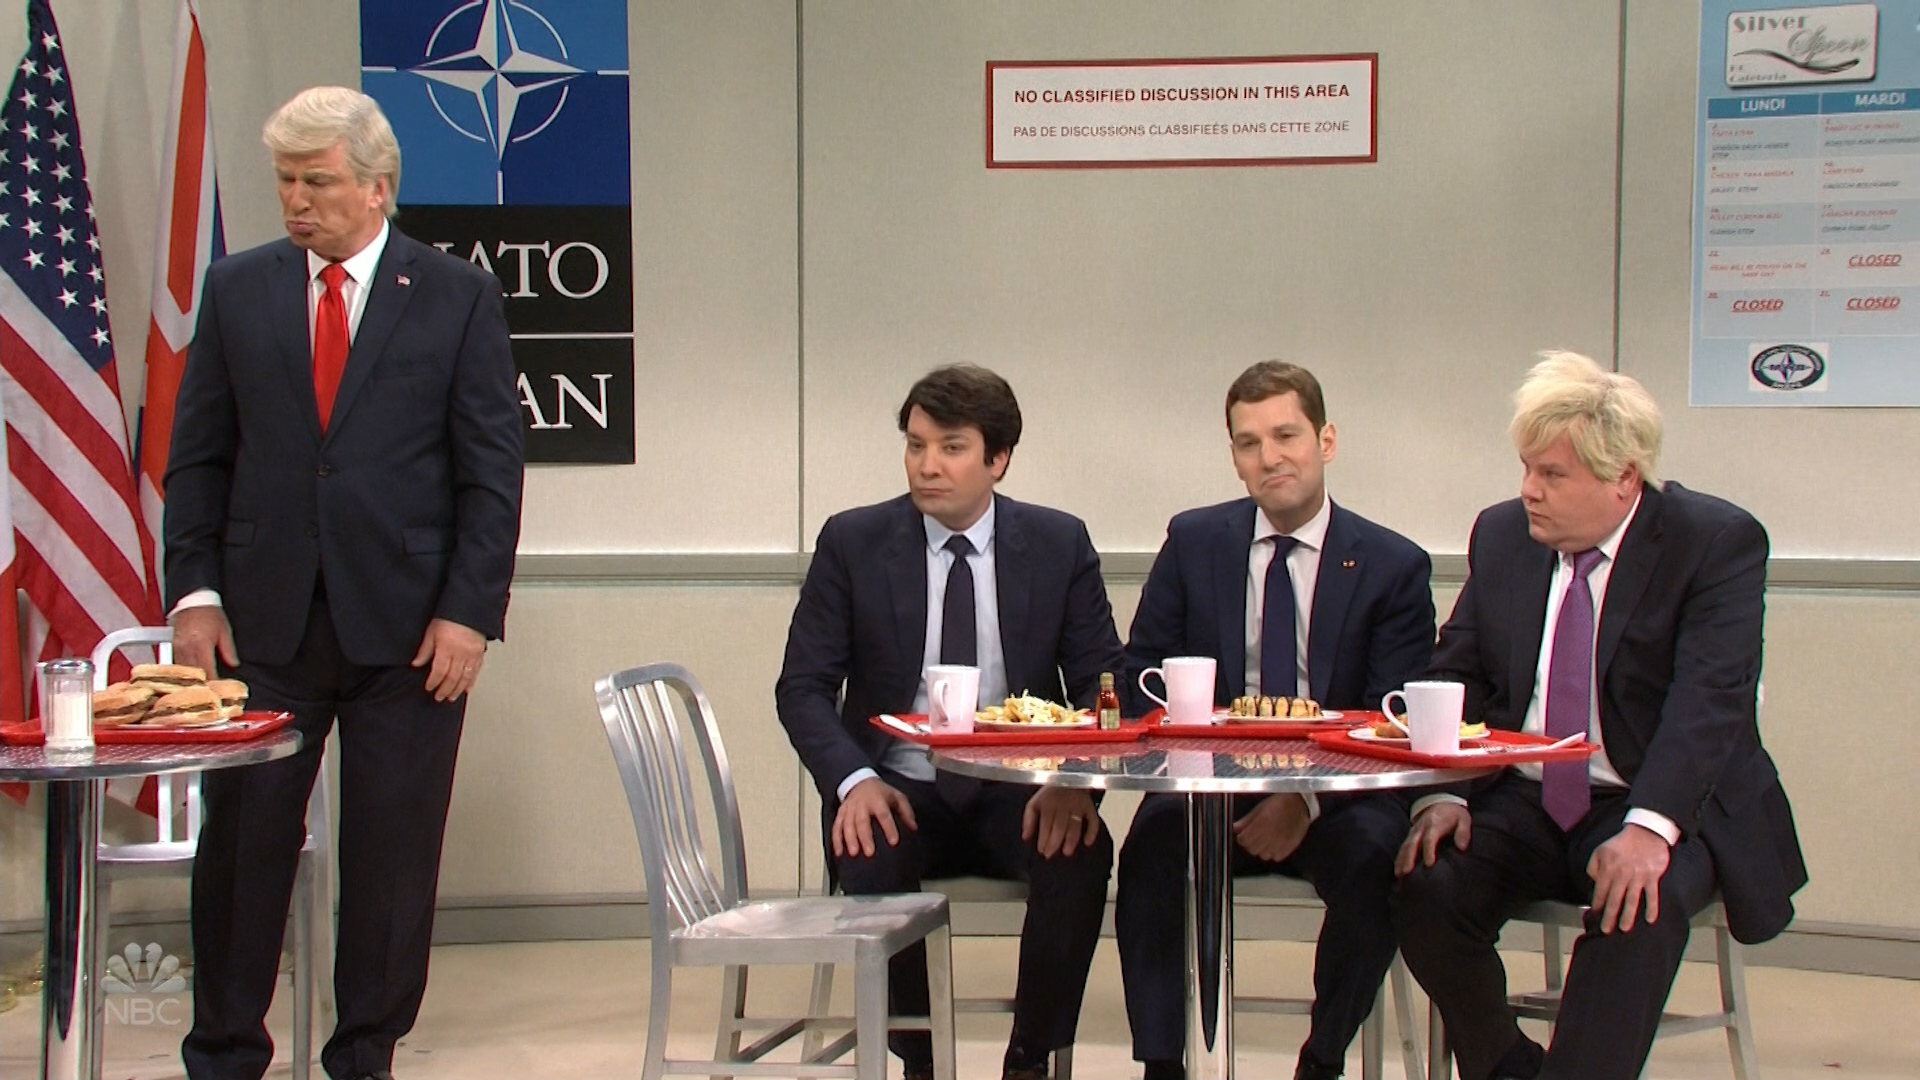 President Donald Trump treated as the nerd among the NATO cool kids in 'Saturday Night Live' cold open